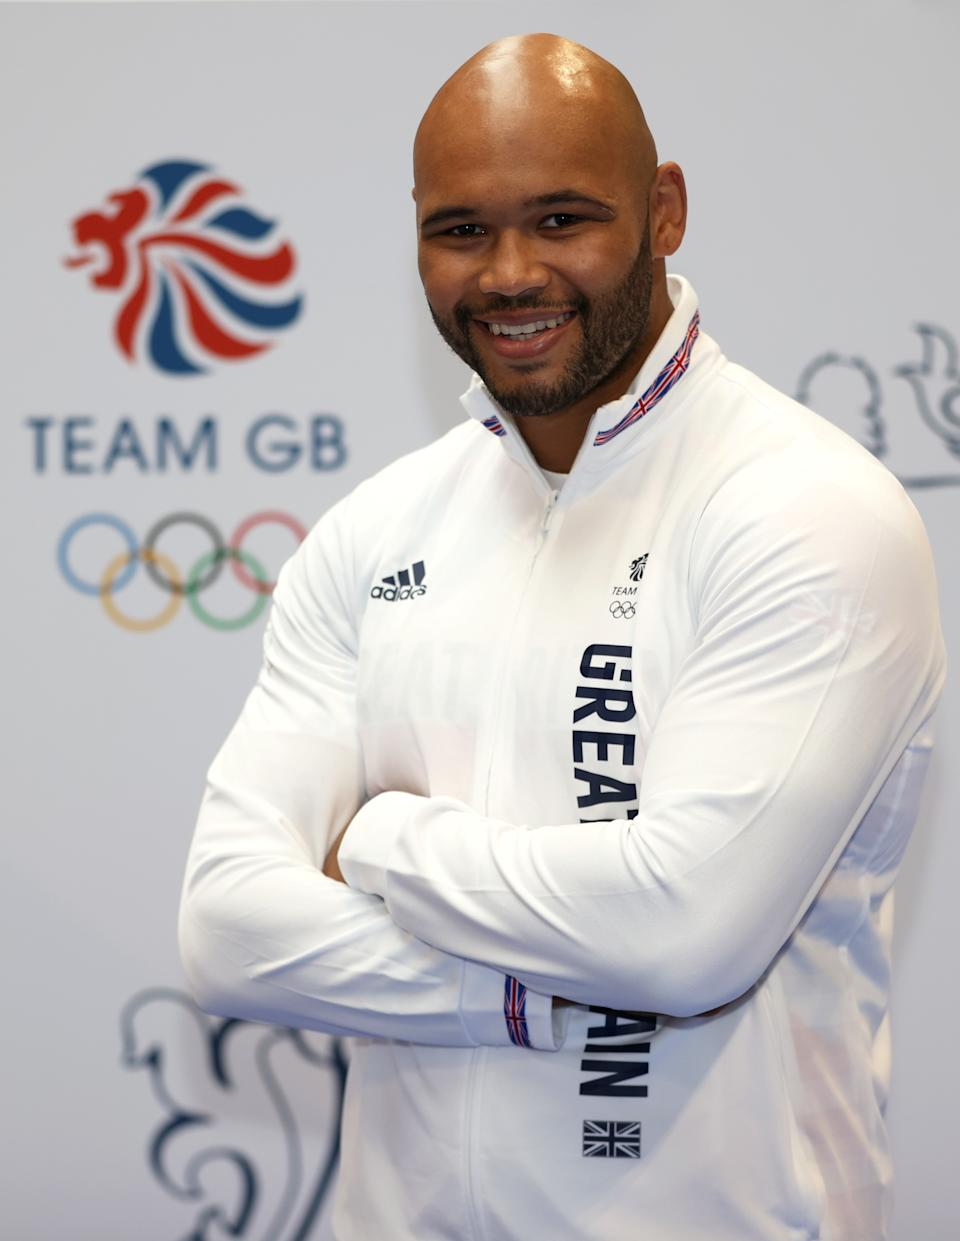 Burton bruiser Clarke, 29, has endured a rollercoaster ride on his way to booking his place at Tokyo 2020